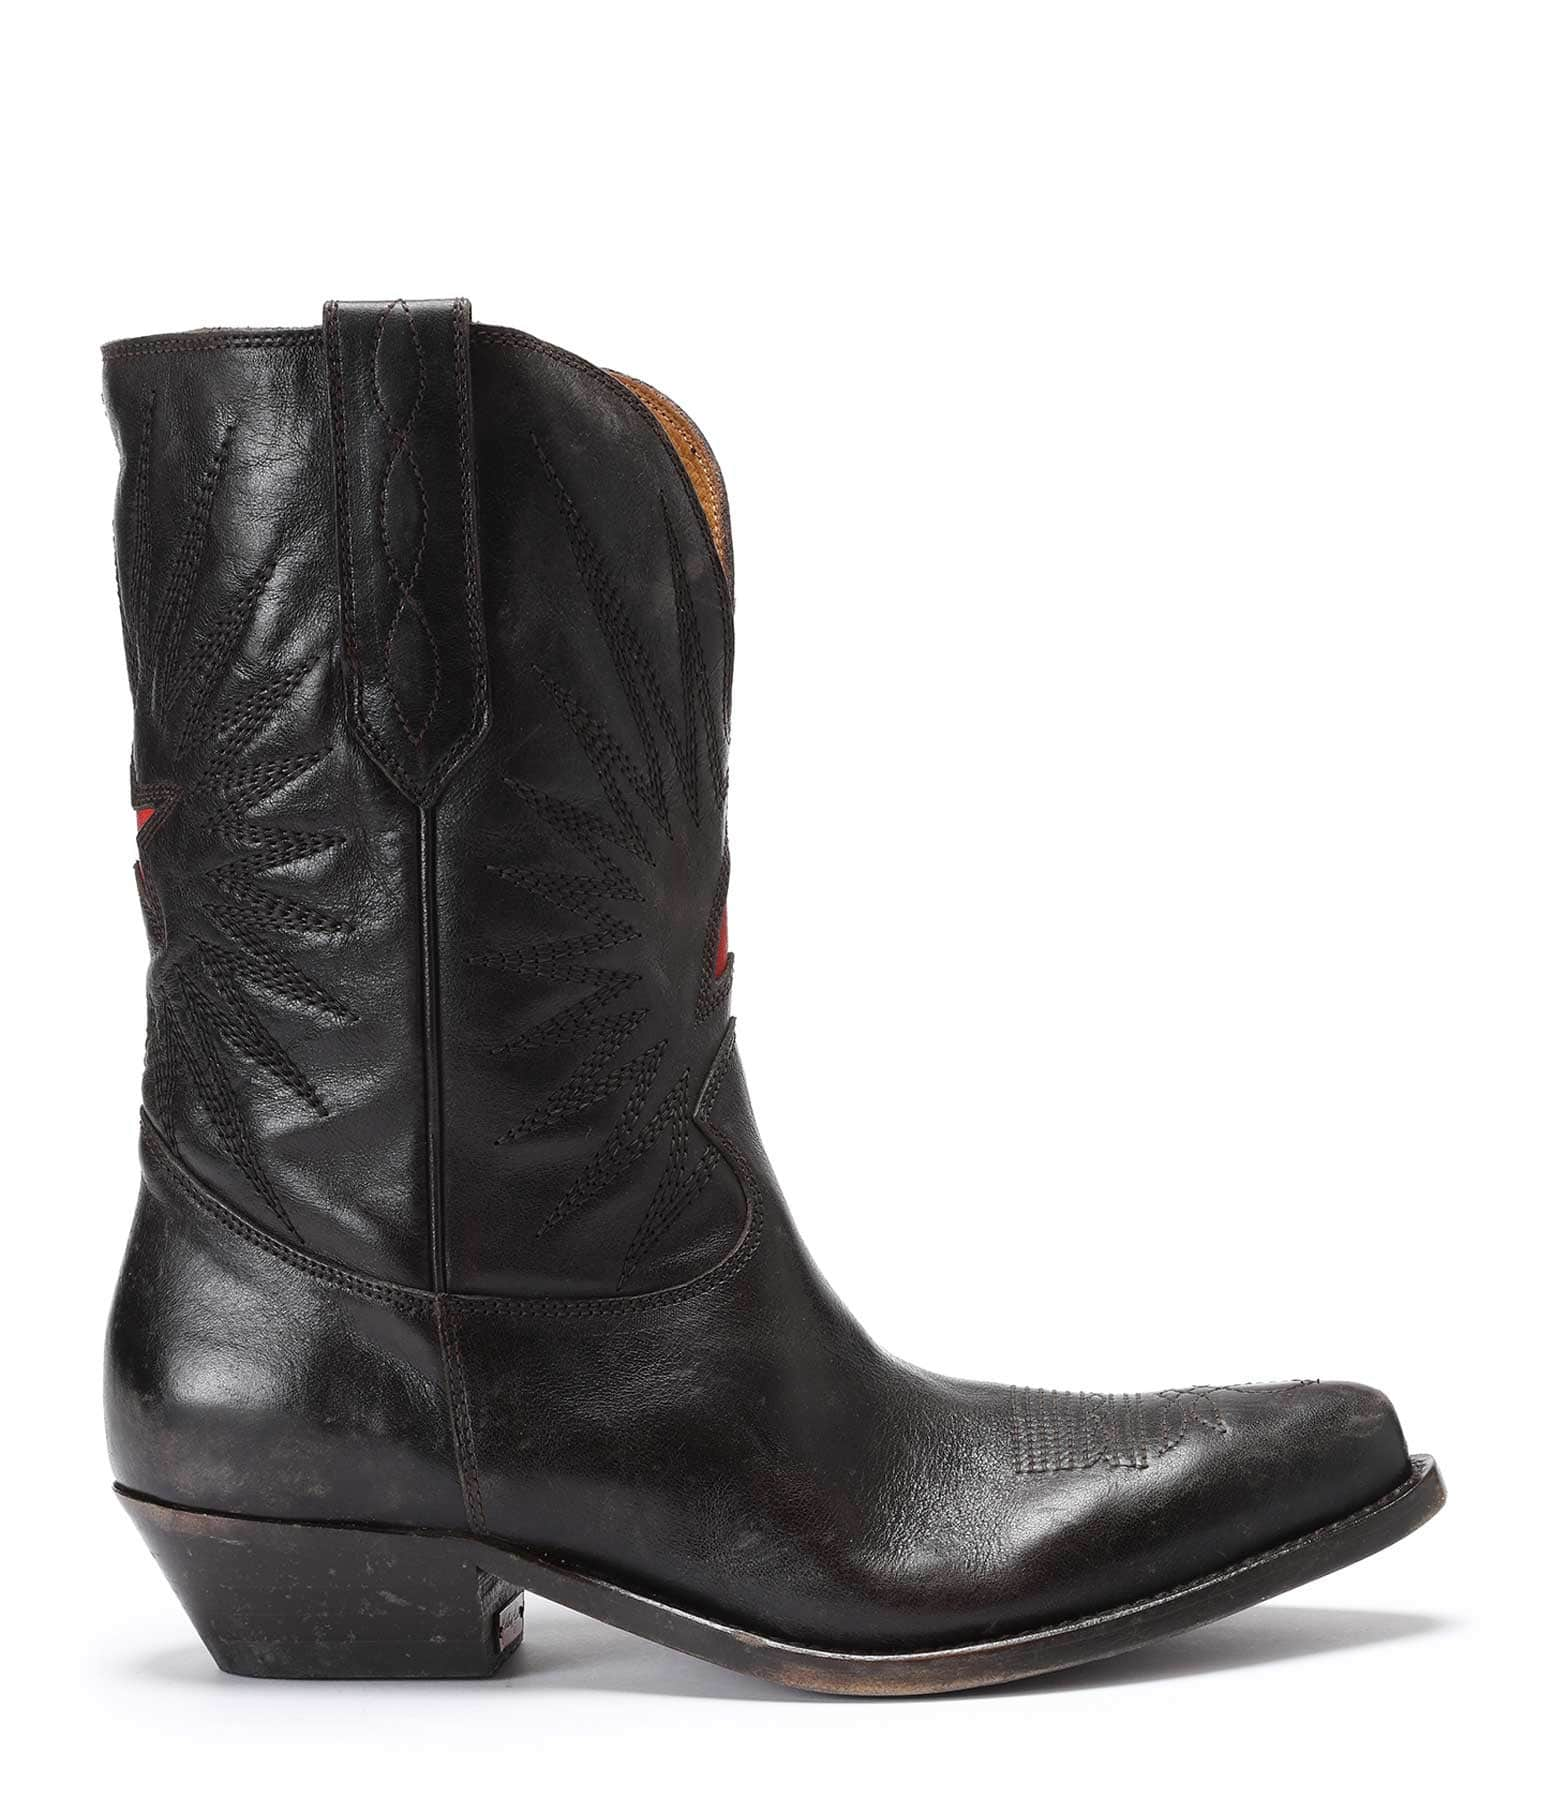 GOLDEN GOOSE - Bottes Wish Star Low Cuir Marron